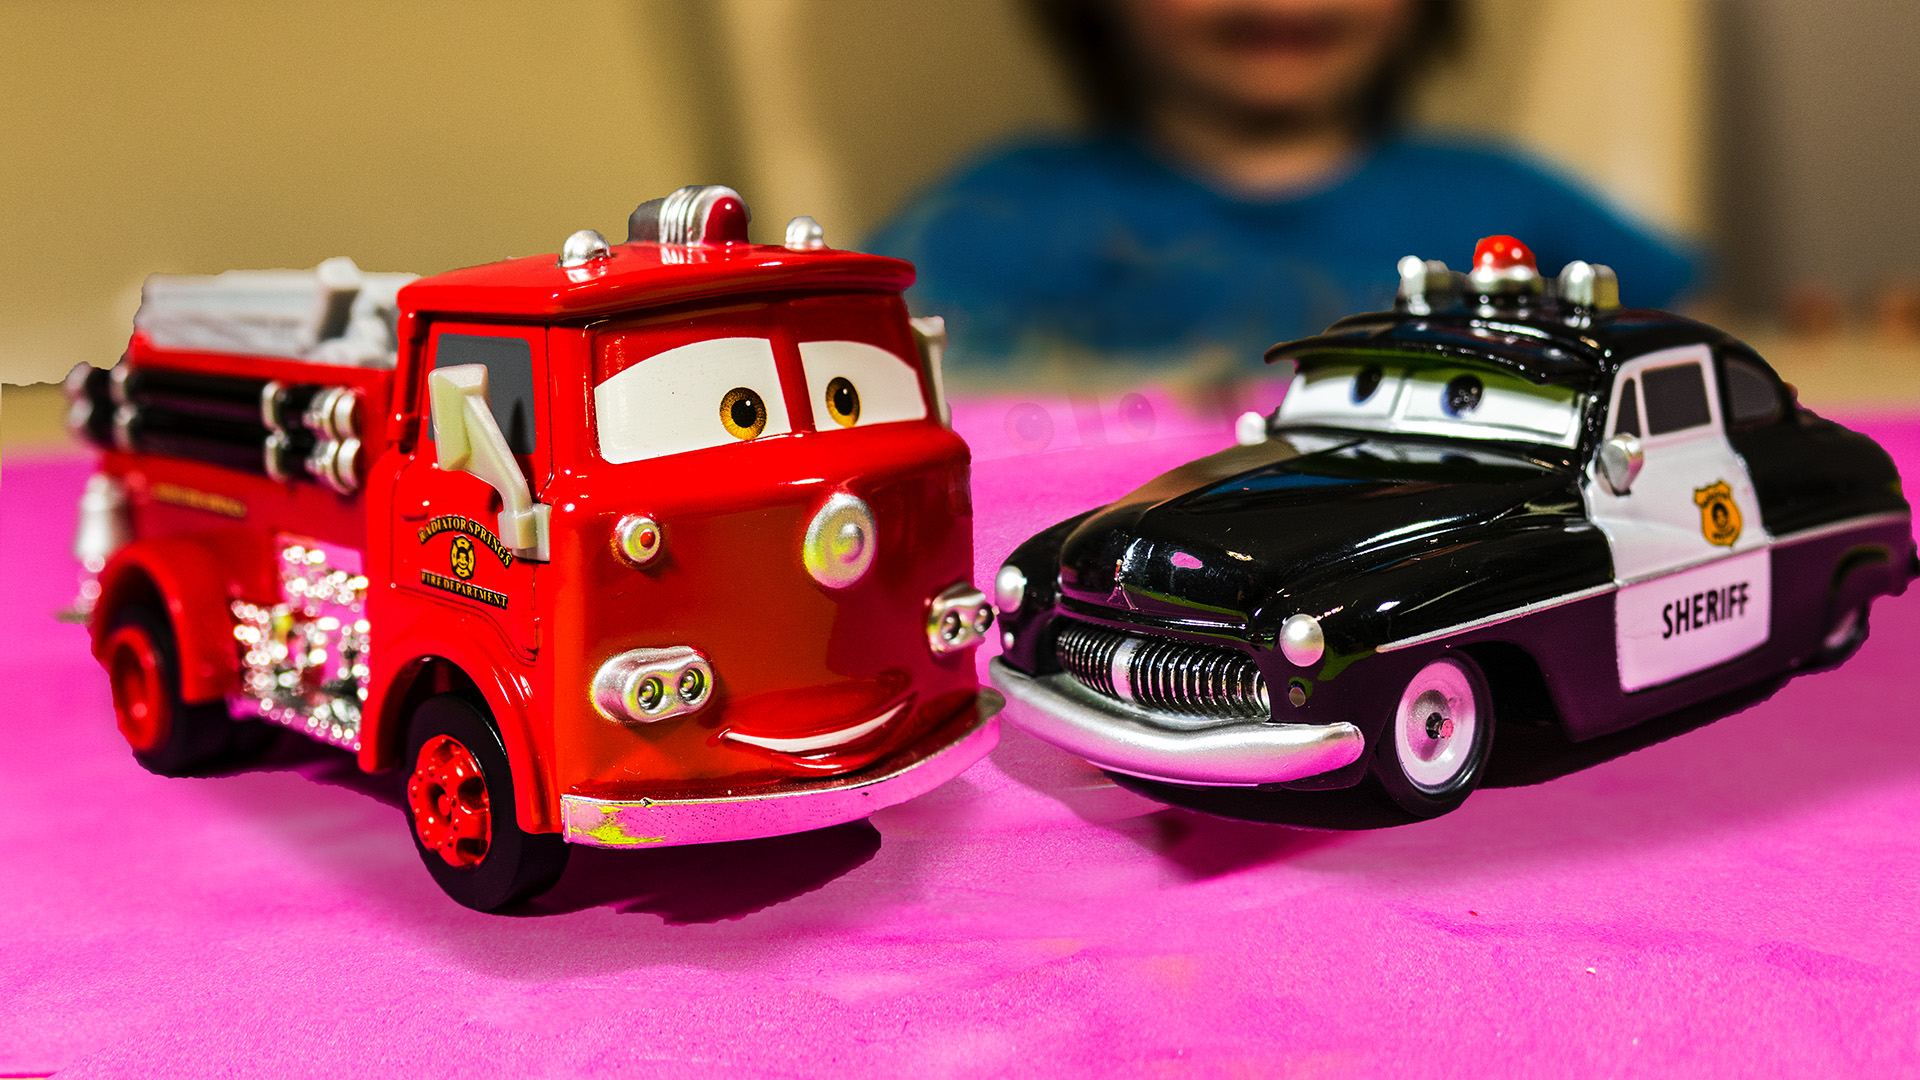 Disney Cars Movie Police Car And Fire Truck Toys Sheriff And Red